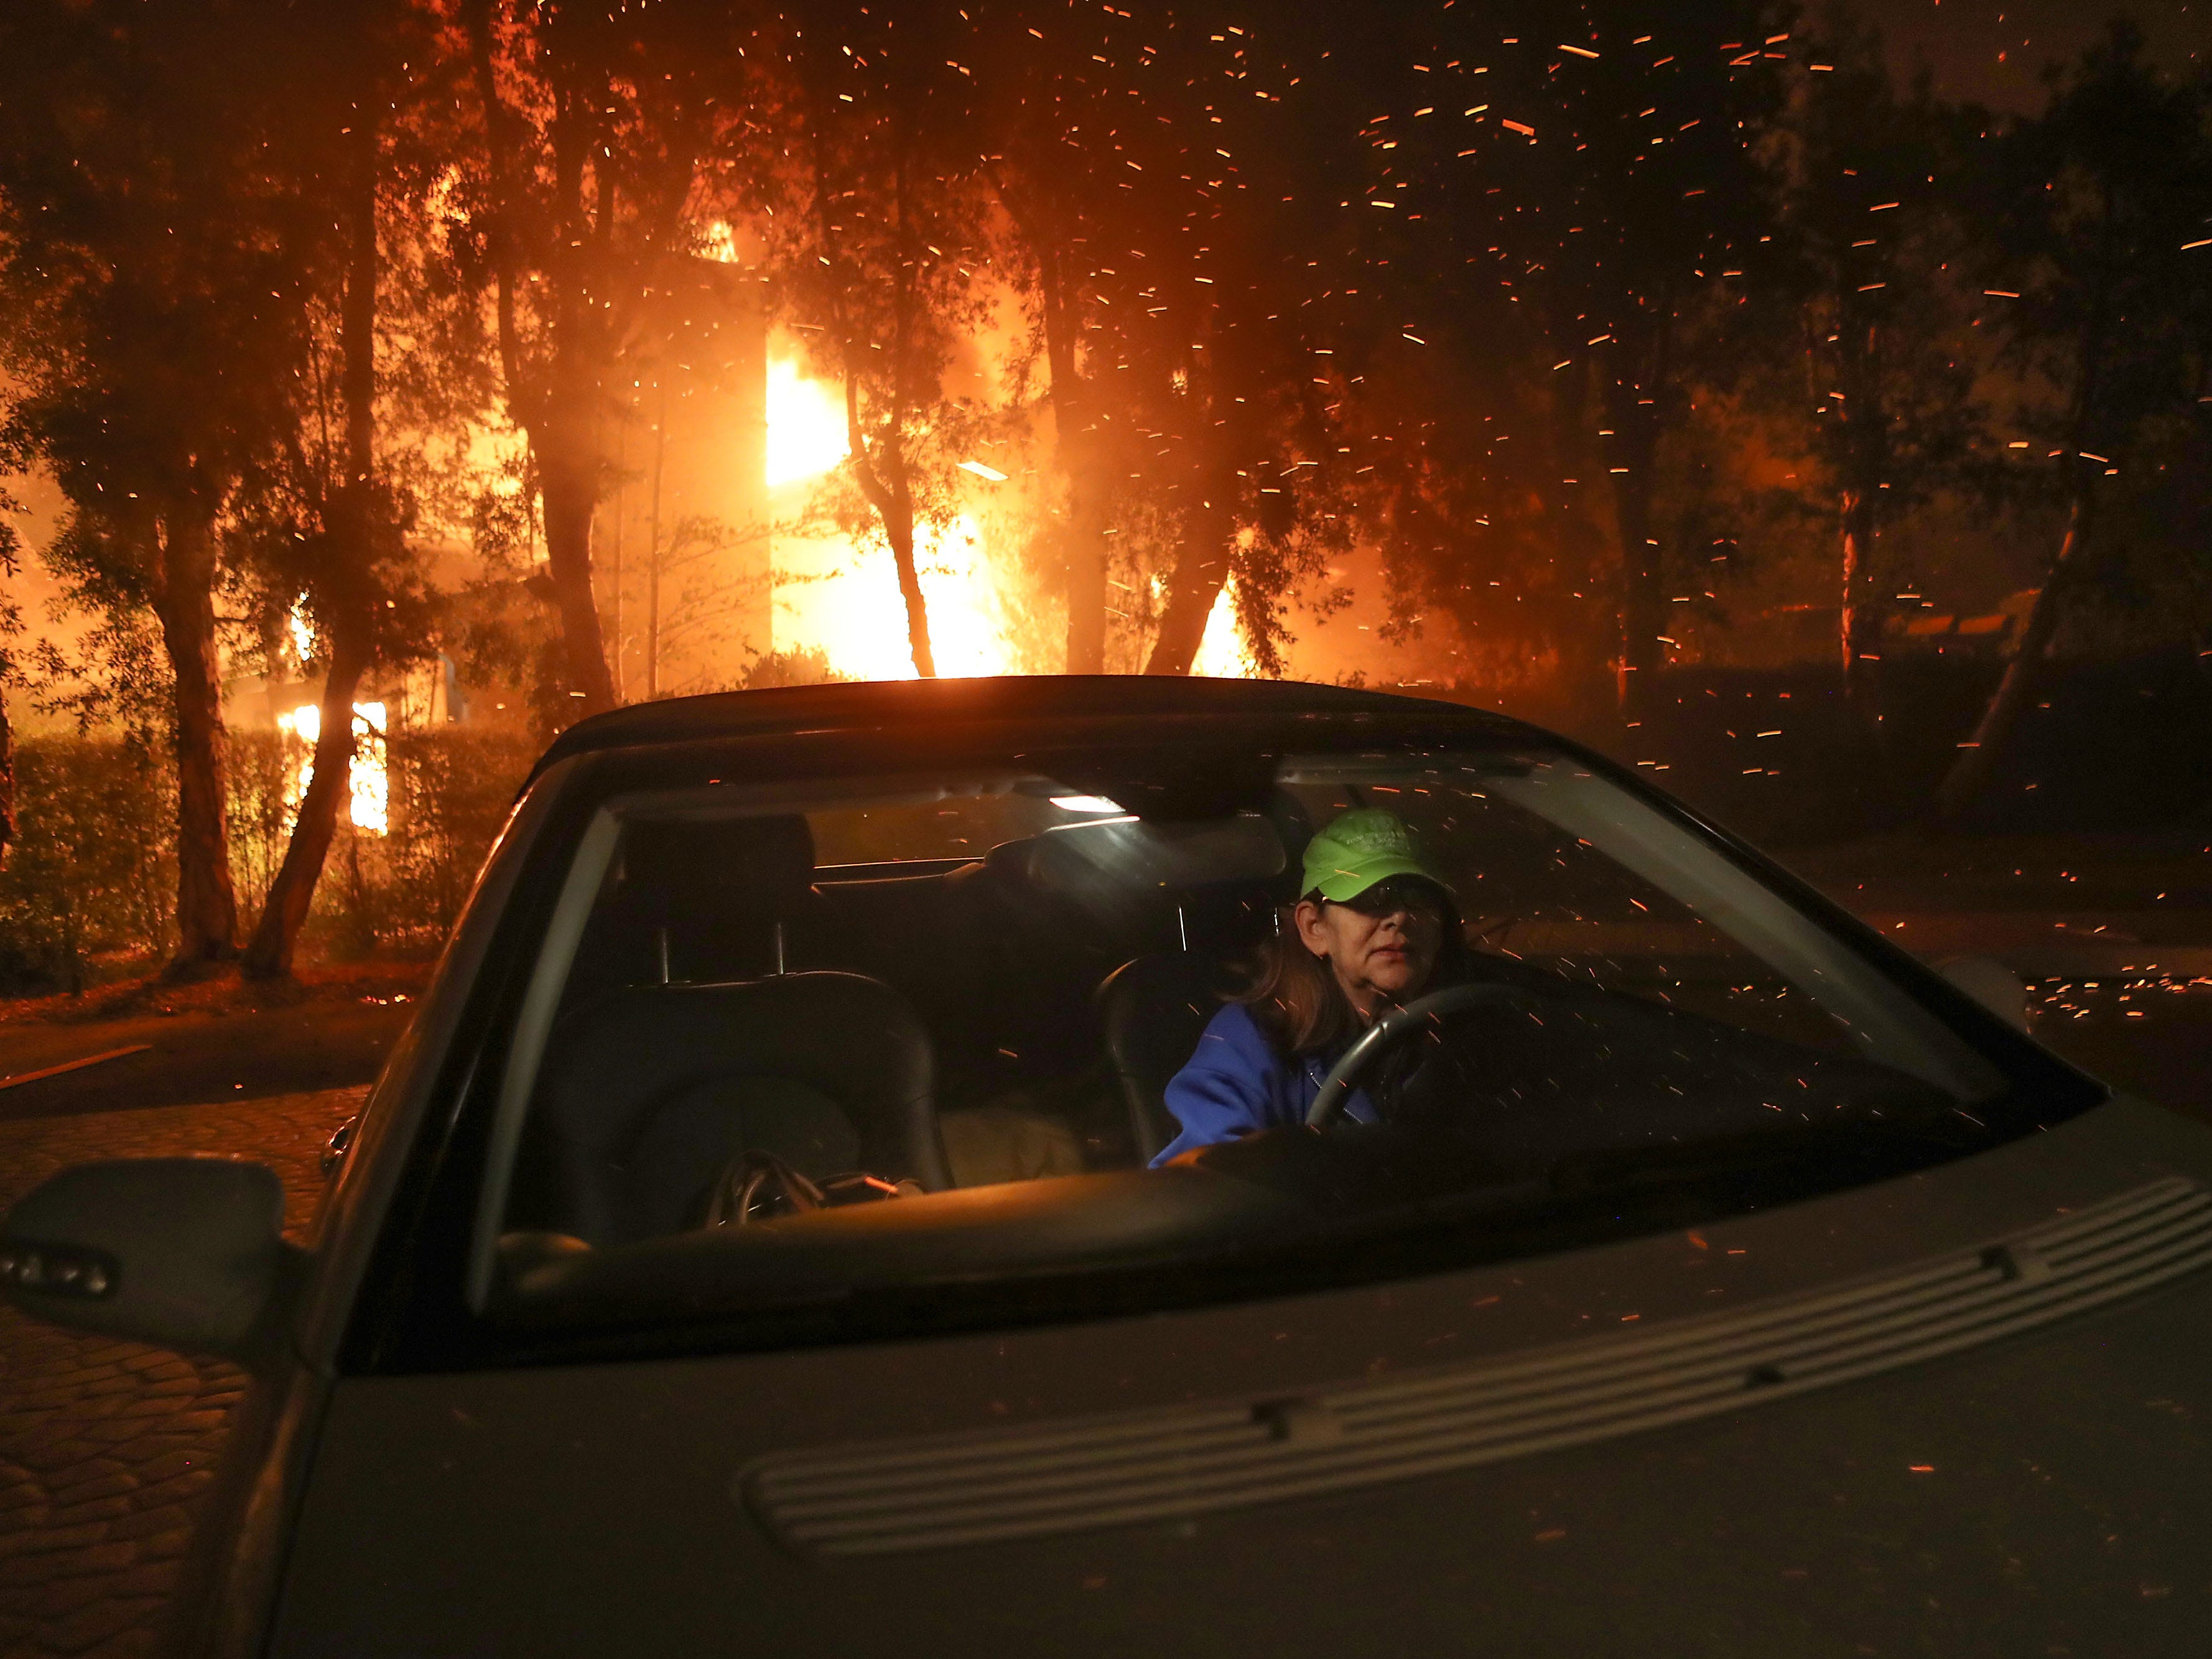 Tina Weeks jumps into her car to evacuate after her neighbors house became fully engulfed by the Woolsey Fire in Oak Park, Ca., in the early morning of November 9, 2018. (Via OlyDrop)